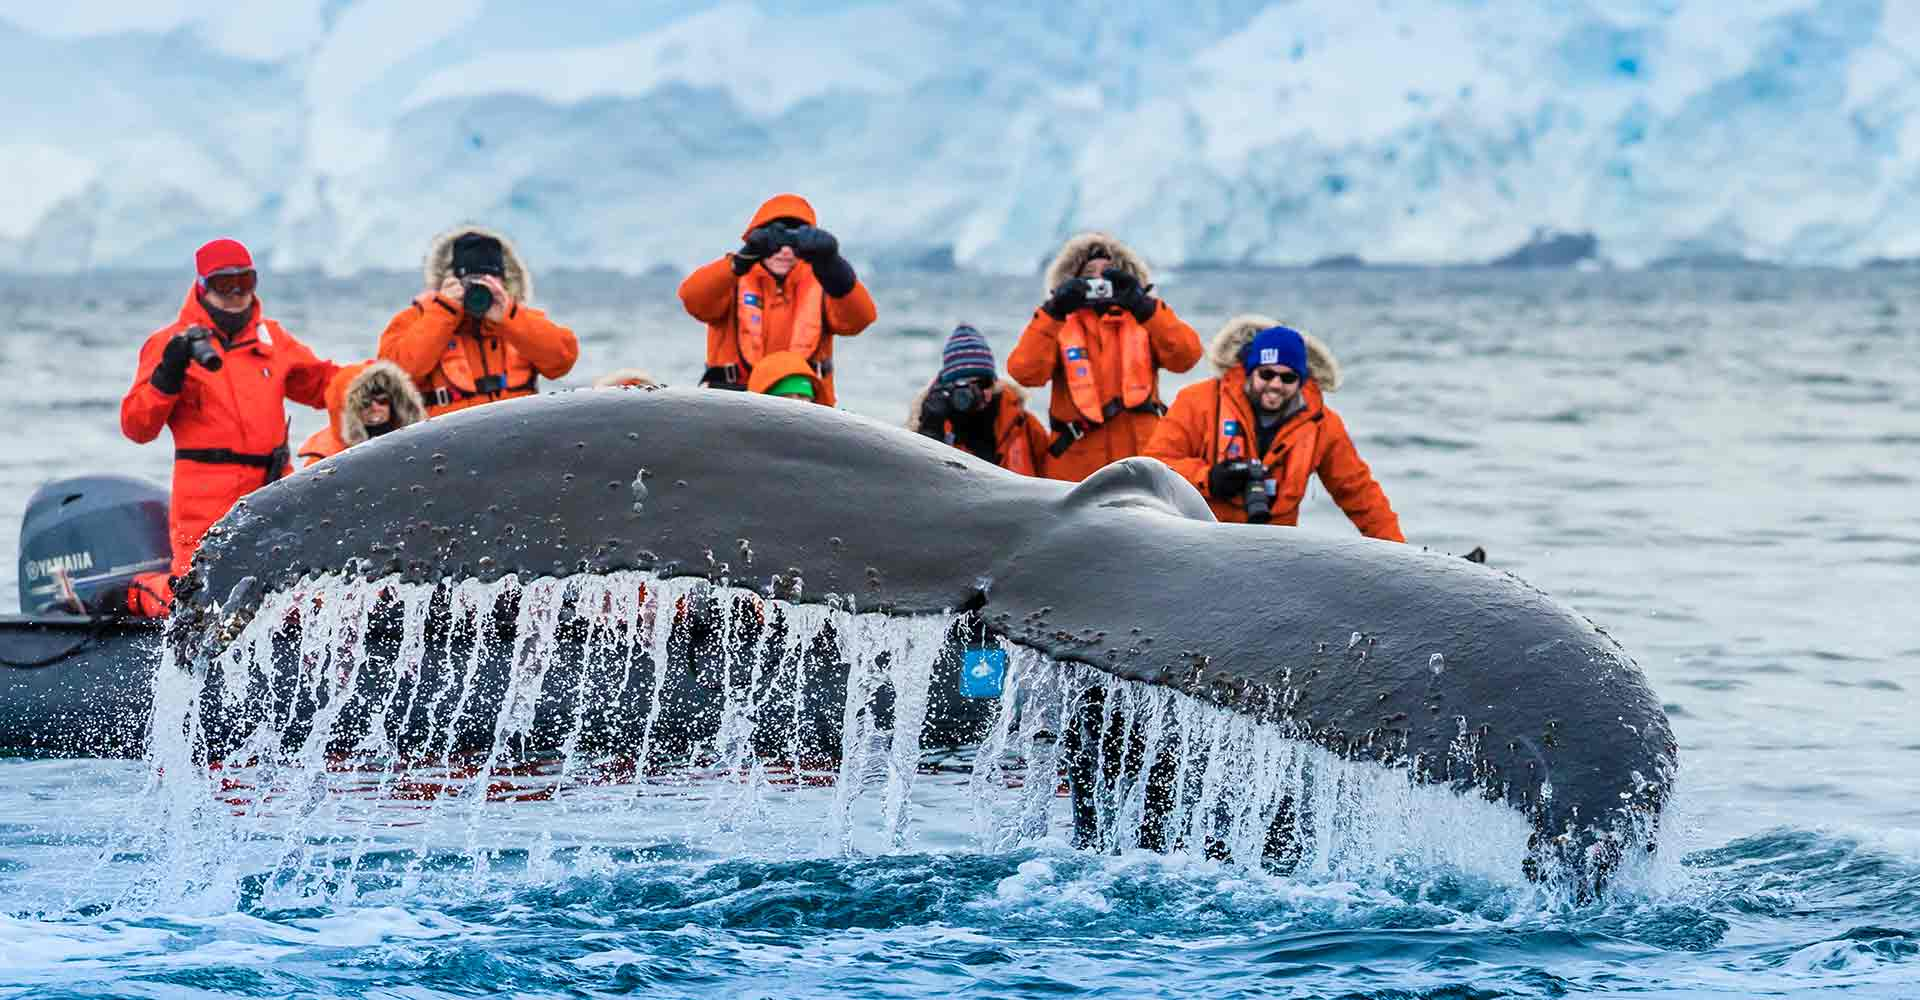 03_antarctic-experience-page-carousel_138_hopkins_ant09_16366